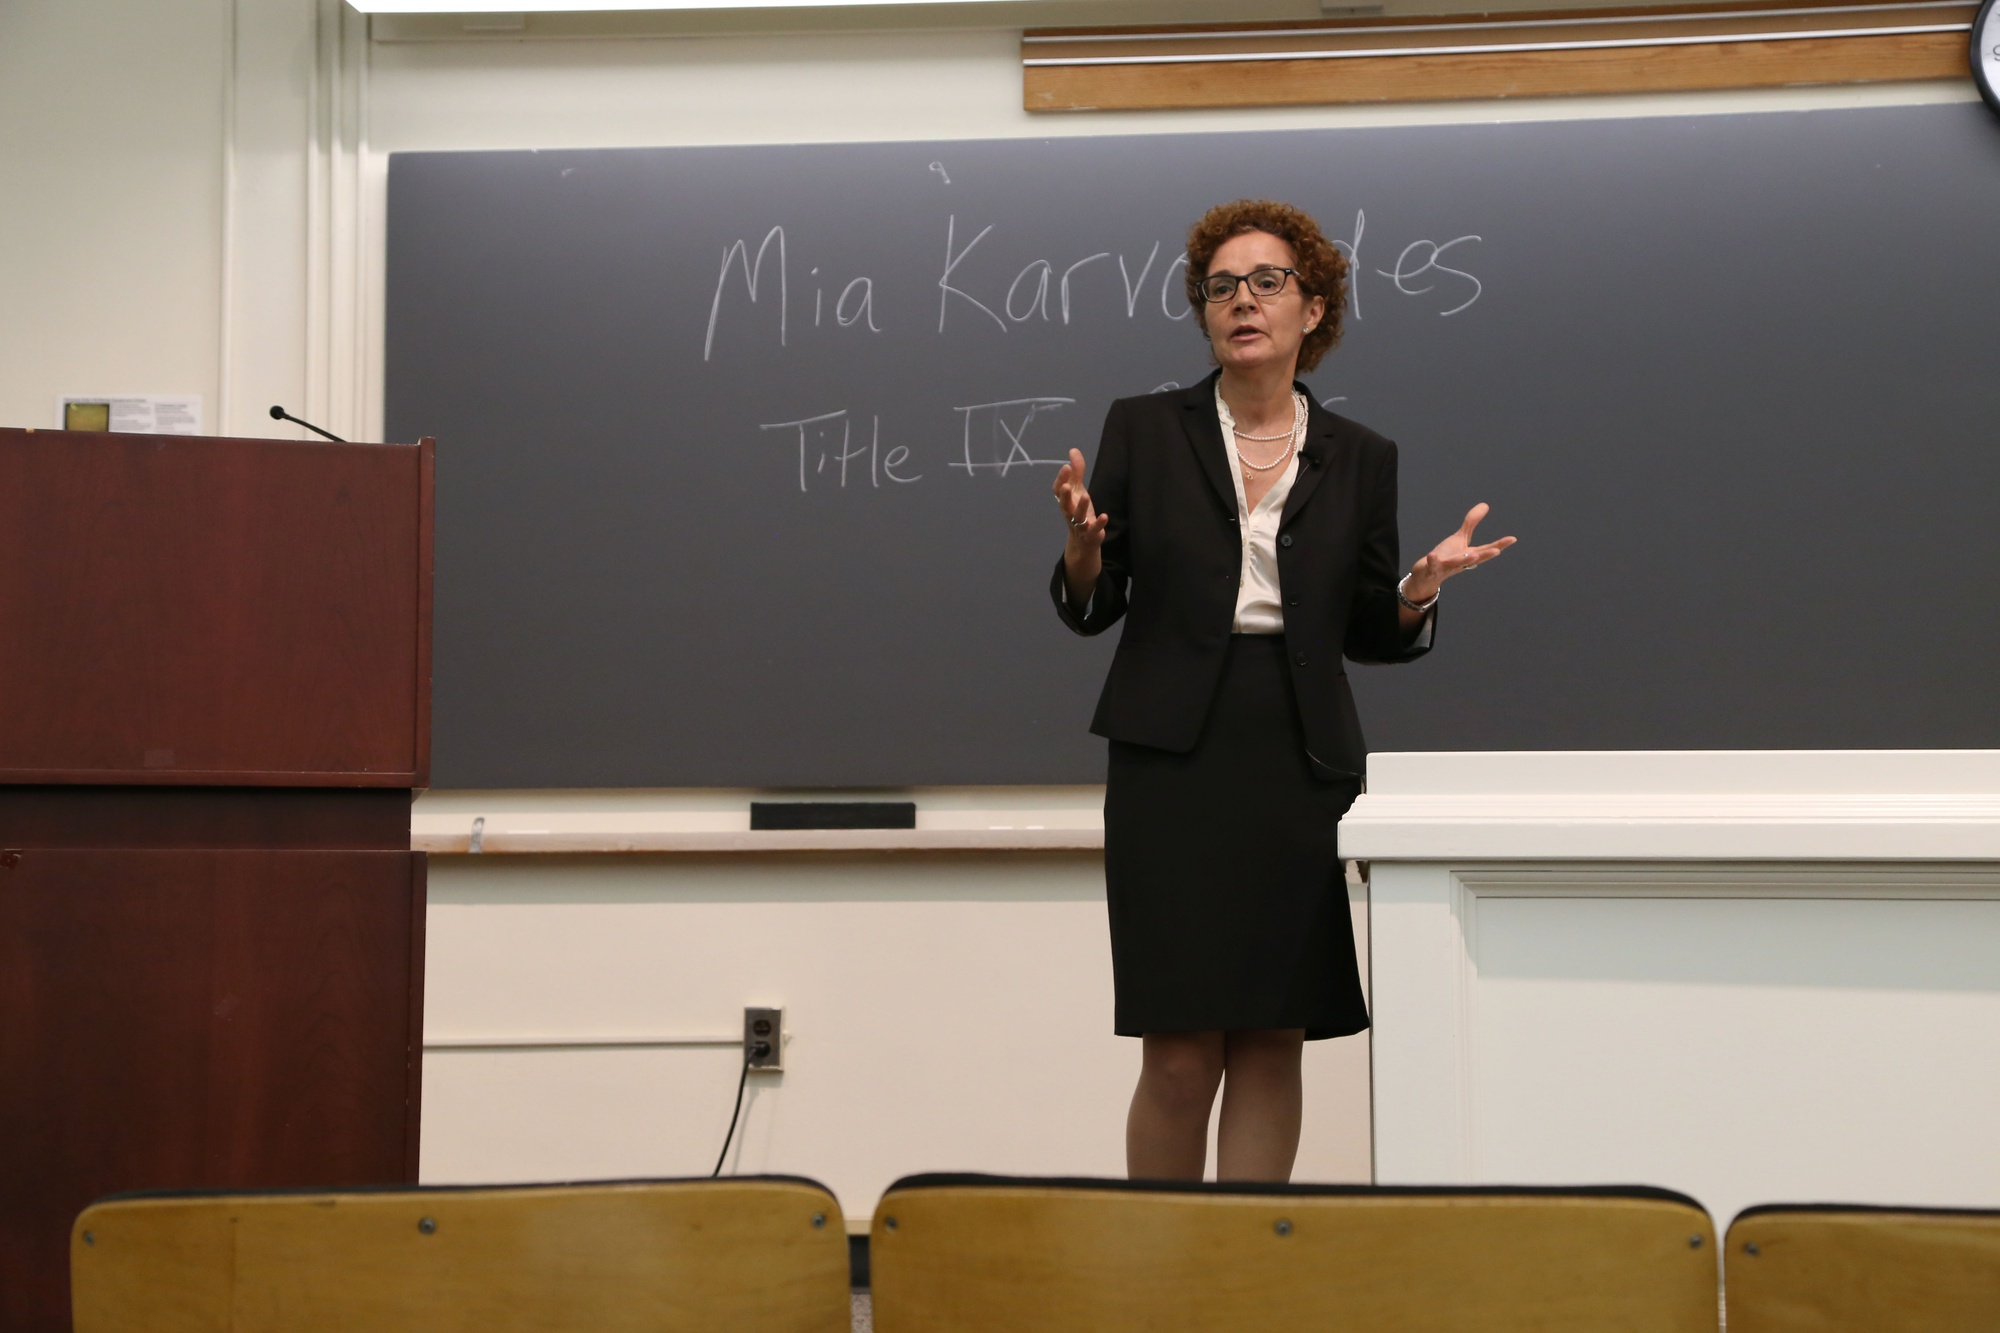 Members of the Harvard community watch as Mia Karvonides, Harvard's Title IX officer, speaks about Harvard's new sexual harassment policy and procedure on Tuesday evening. The community discussion, held in Emerson hall, was the first in a series of meetings on sexual harassment policy open to the Harvard community.